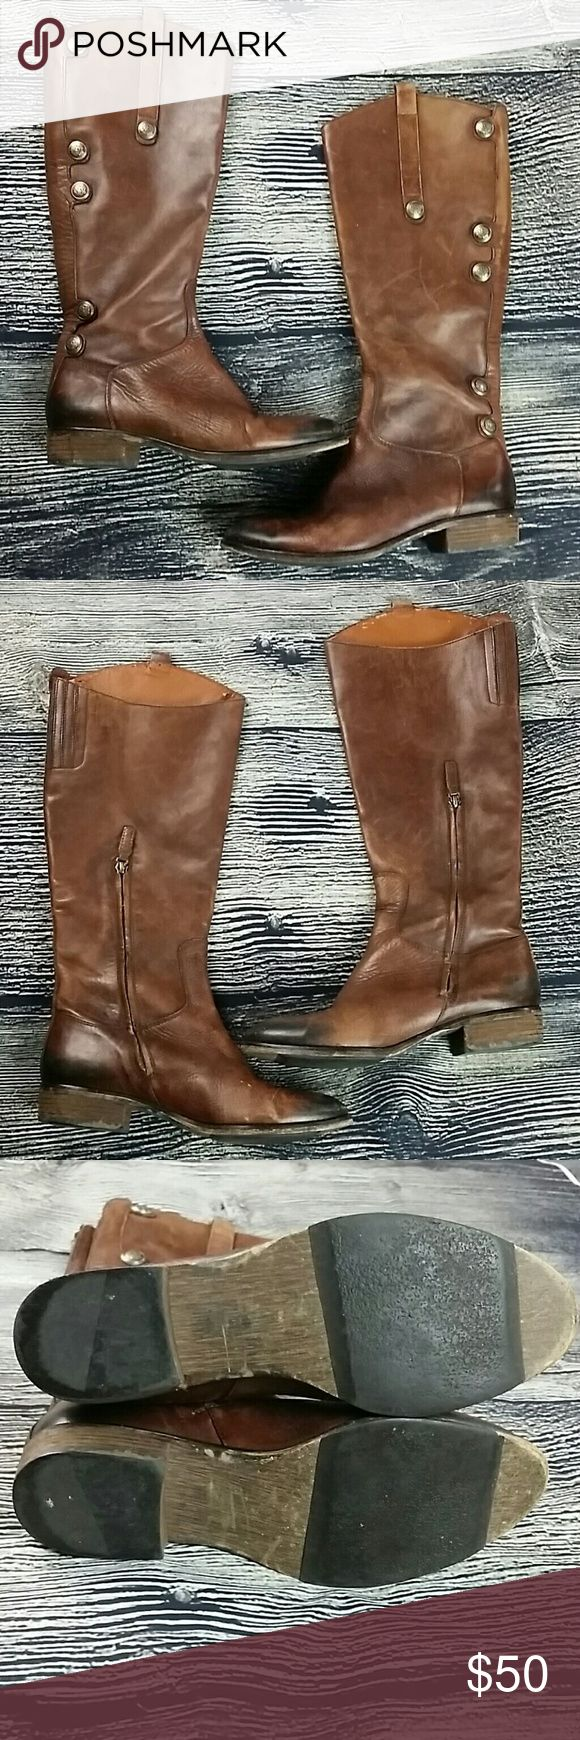 """Arturo Chiang size 8M brown Enchant tall round toe Arturo Chiang size 8M brown Enchant tall round toe boots Leather knee high heeled boots Whiskey brown  Heel height 1"""" 16.5"""" tall from bottom of heel to top    C350 Arturo Chiang Shoes Heeled Boots"""